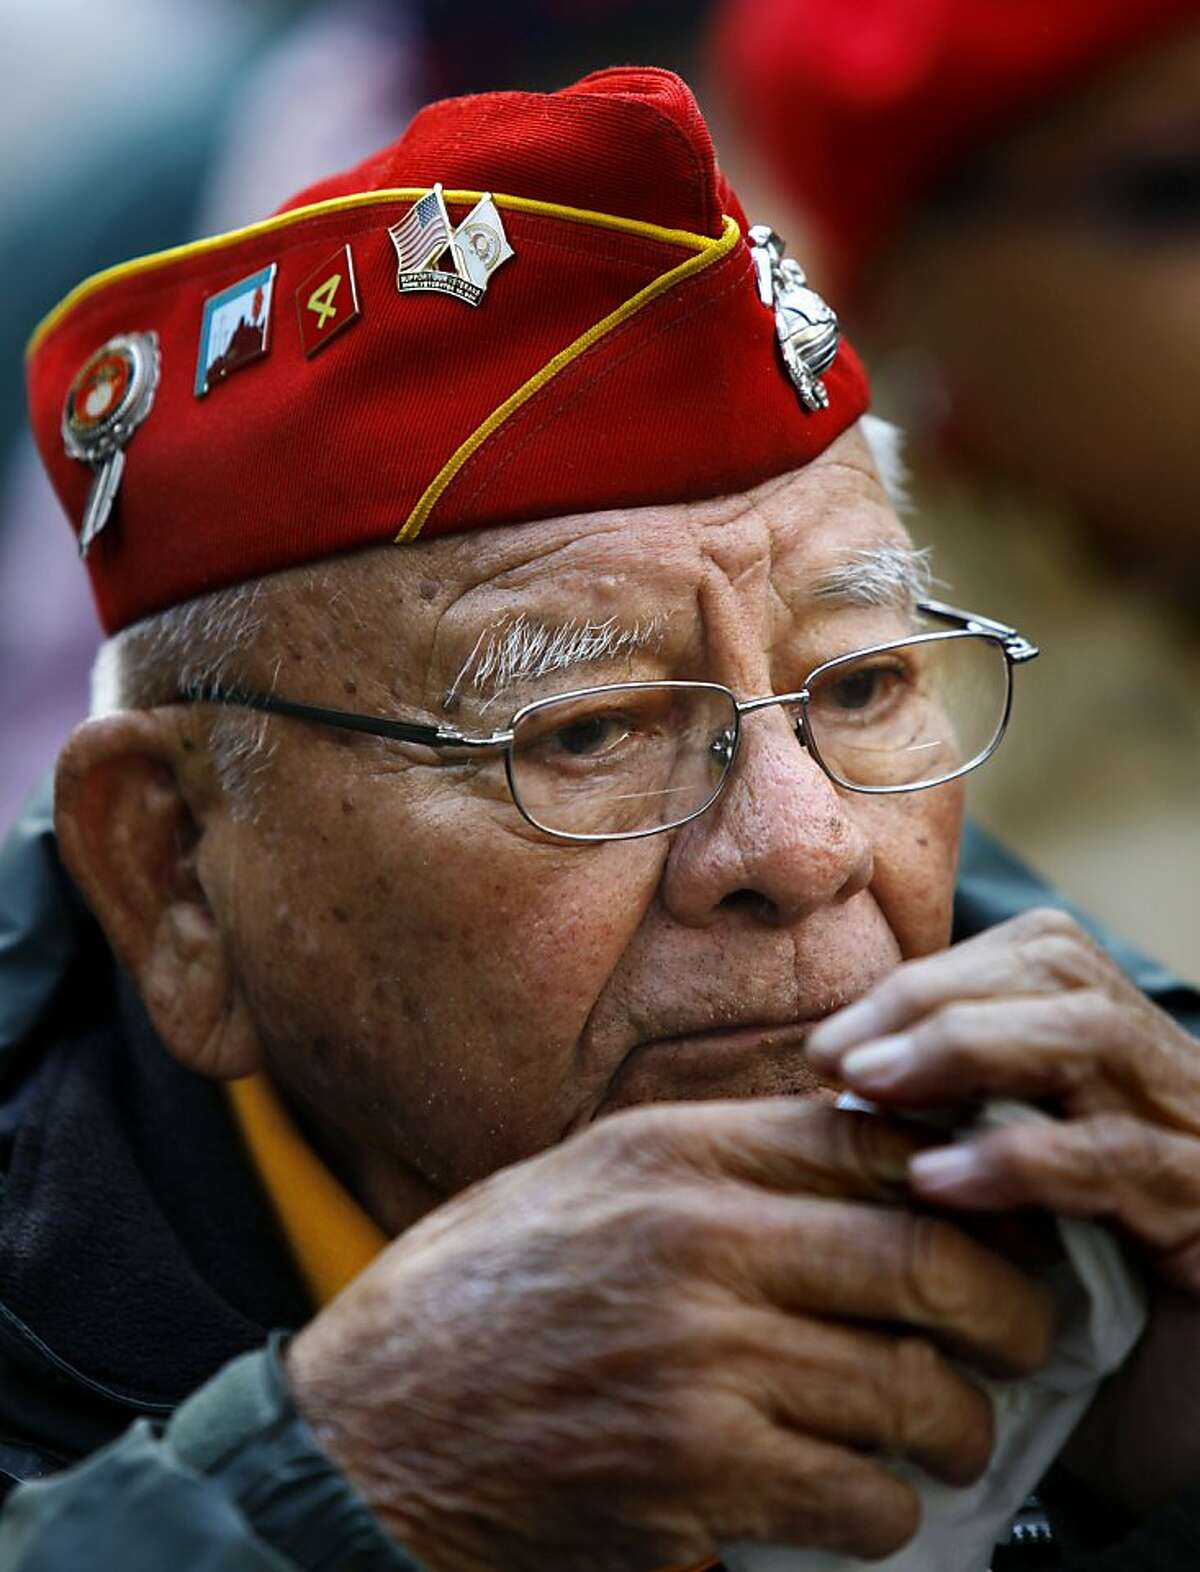 FILE - In this Nov. 11, 2011 photo, Keith Little, 87, from Winter Rock, Az., a veteran Navajo CodeTalker with the U.S. Marine Corp 4th Marine Division 25th Regiment between 1939- 1945, listens during ceremonies for the New York City Veterans Day Parade. The Navajo Code Talkers Association says Little died Tuesday, Jan. 3, 2012 at a Fort Defiance, Ariz., hospital. He was 87. (AP Photo/Bebeto Matthews)